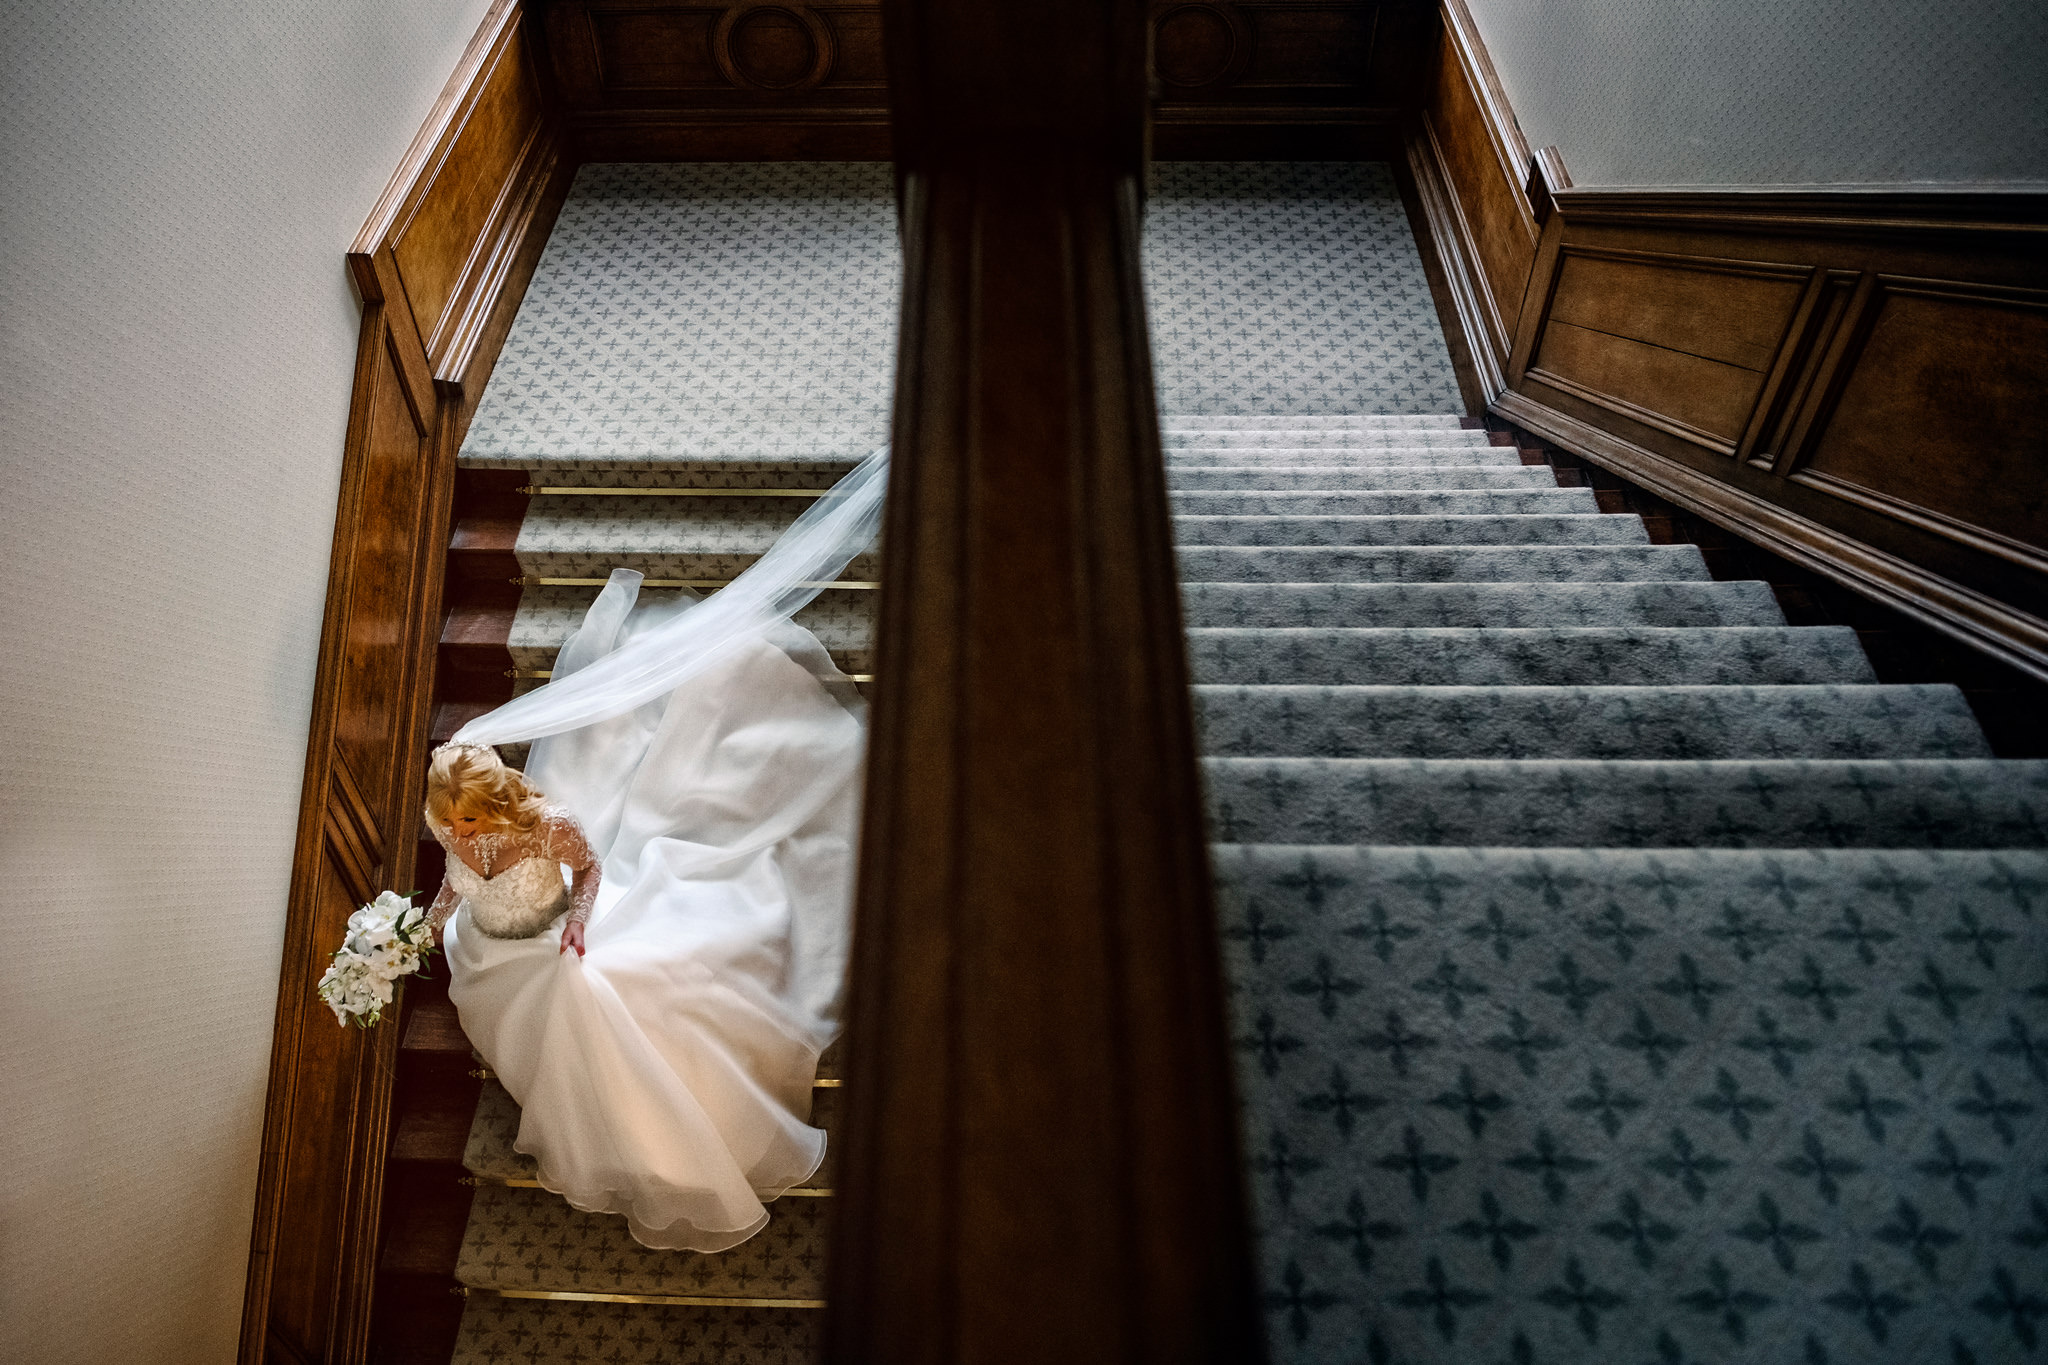 Bride descends stairway with chiffon dress and veil - photo by Rich Howman